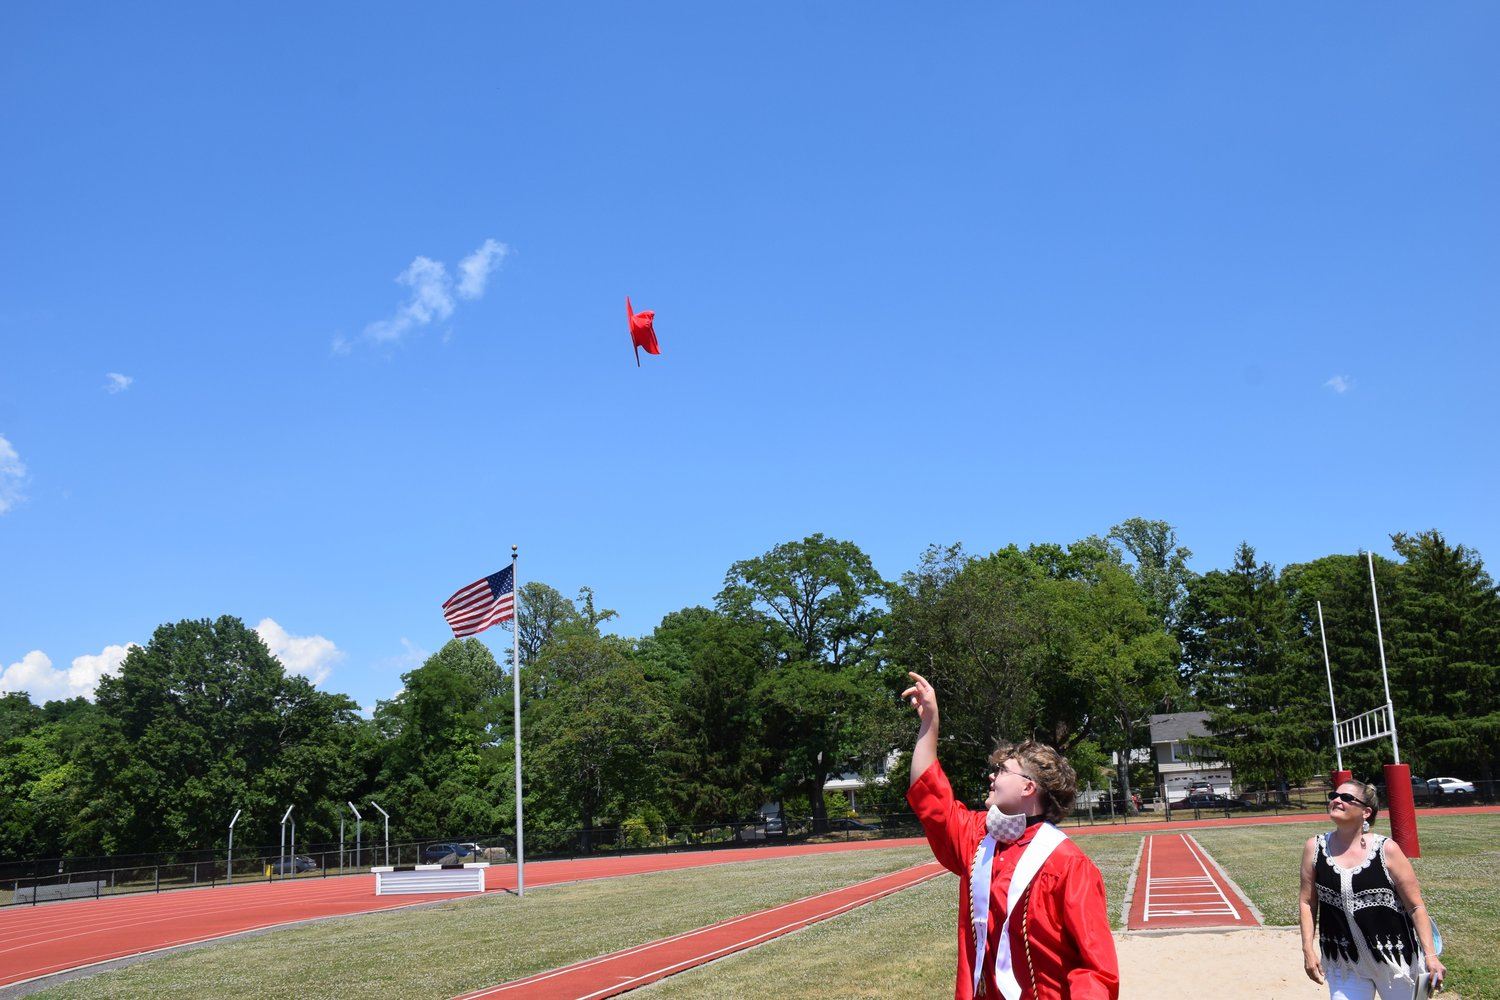 A Glen Cove High School graduate celebrated after receiving his diploma.